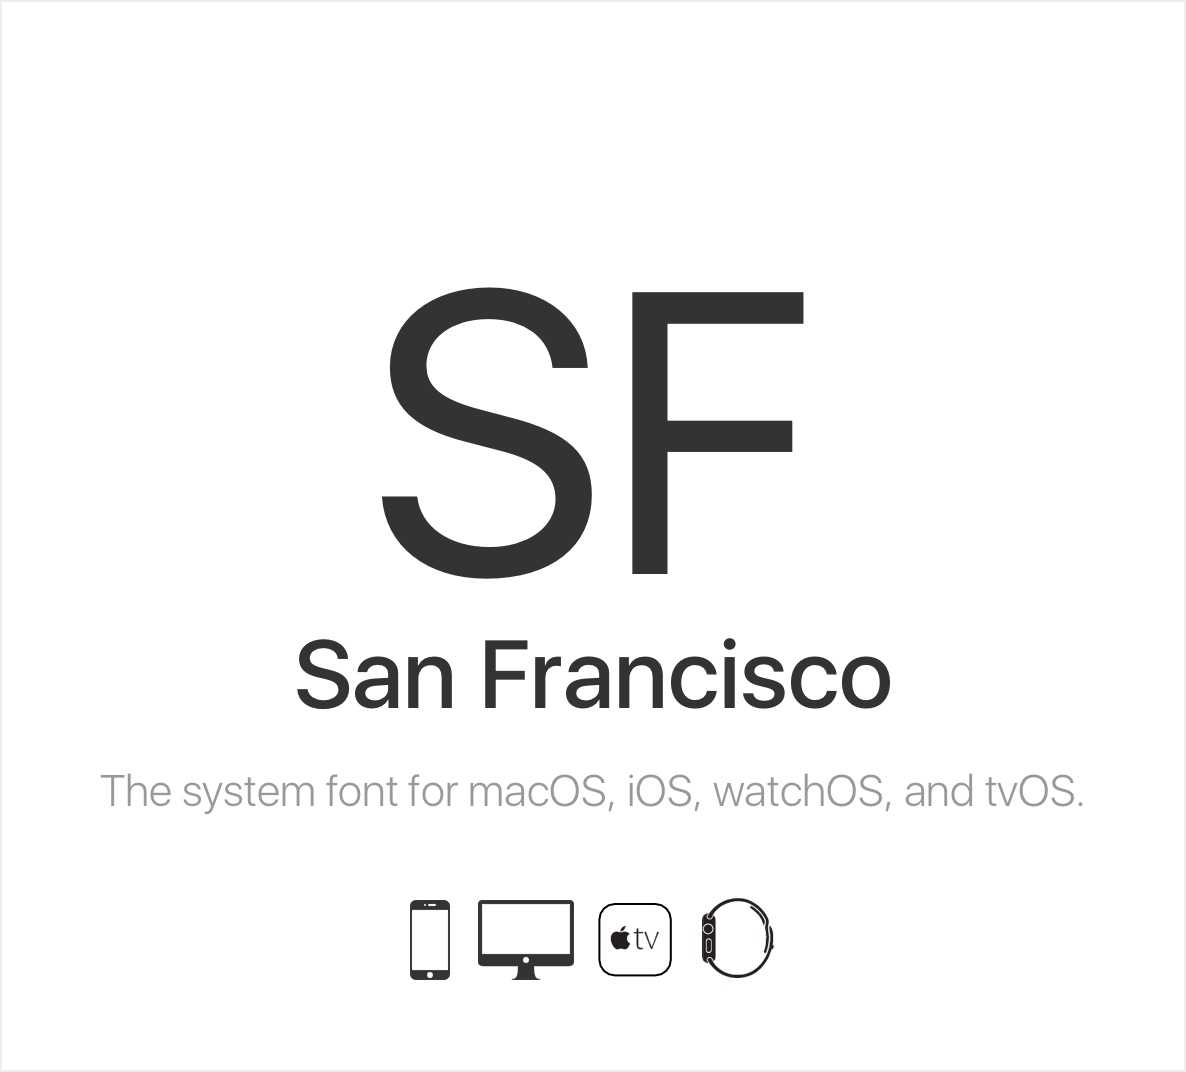 San Francisco Font - The system font of Apple devices